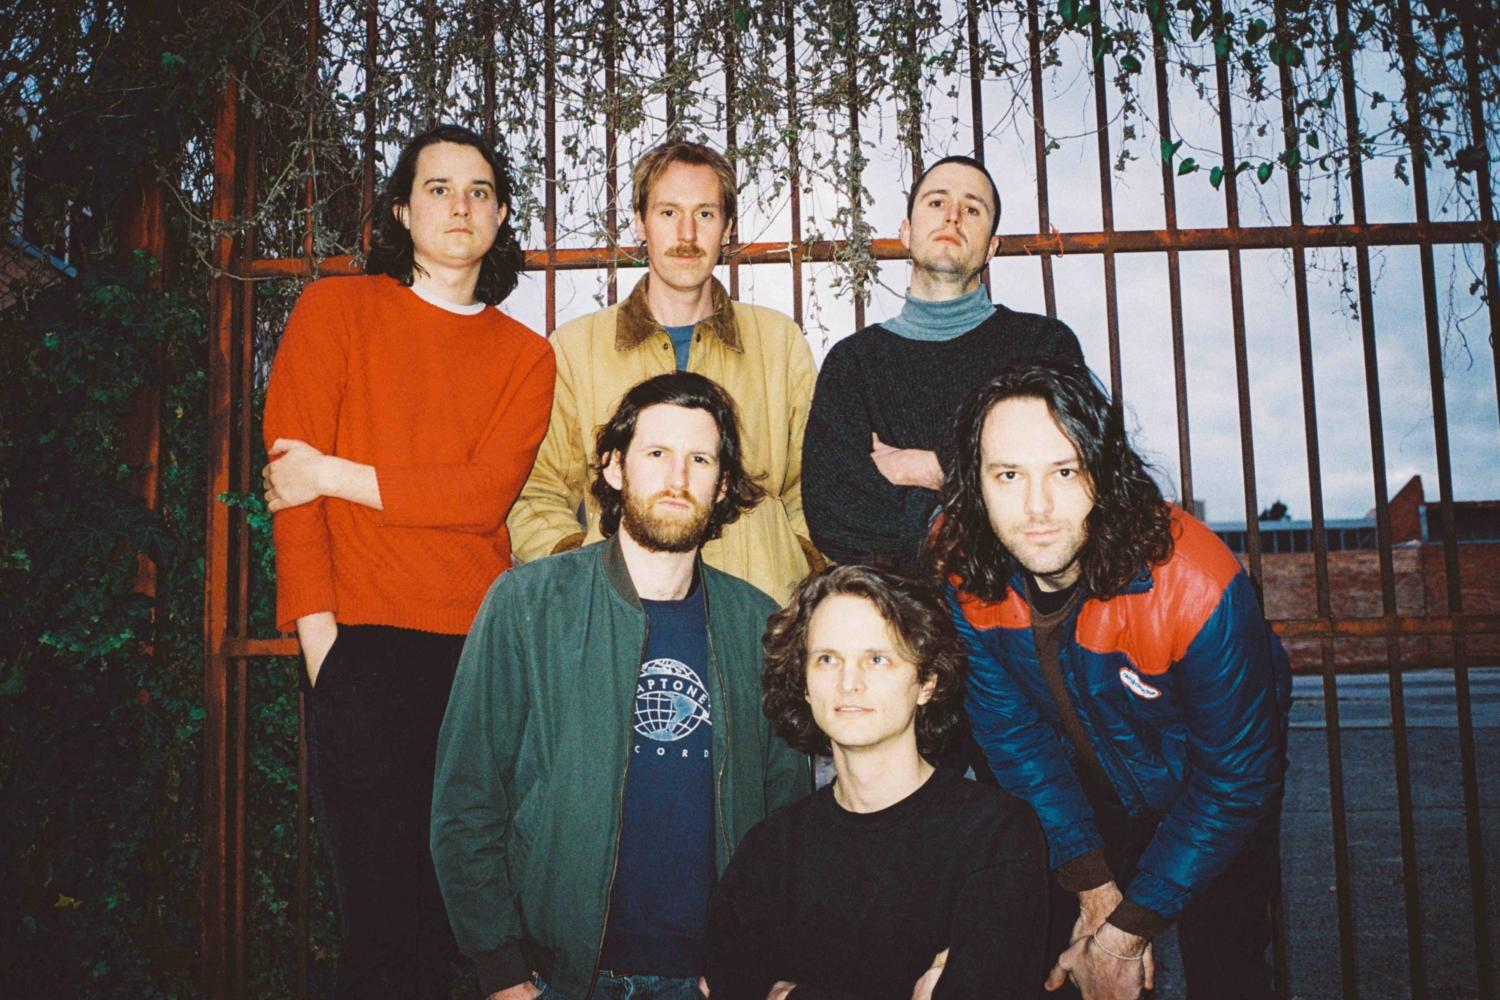 King Gizzard & The Lizard Wizard release new track 'If Not Now, Then When?'